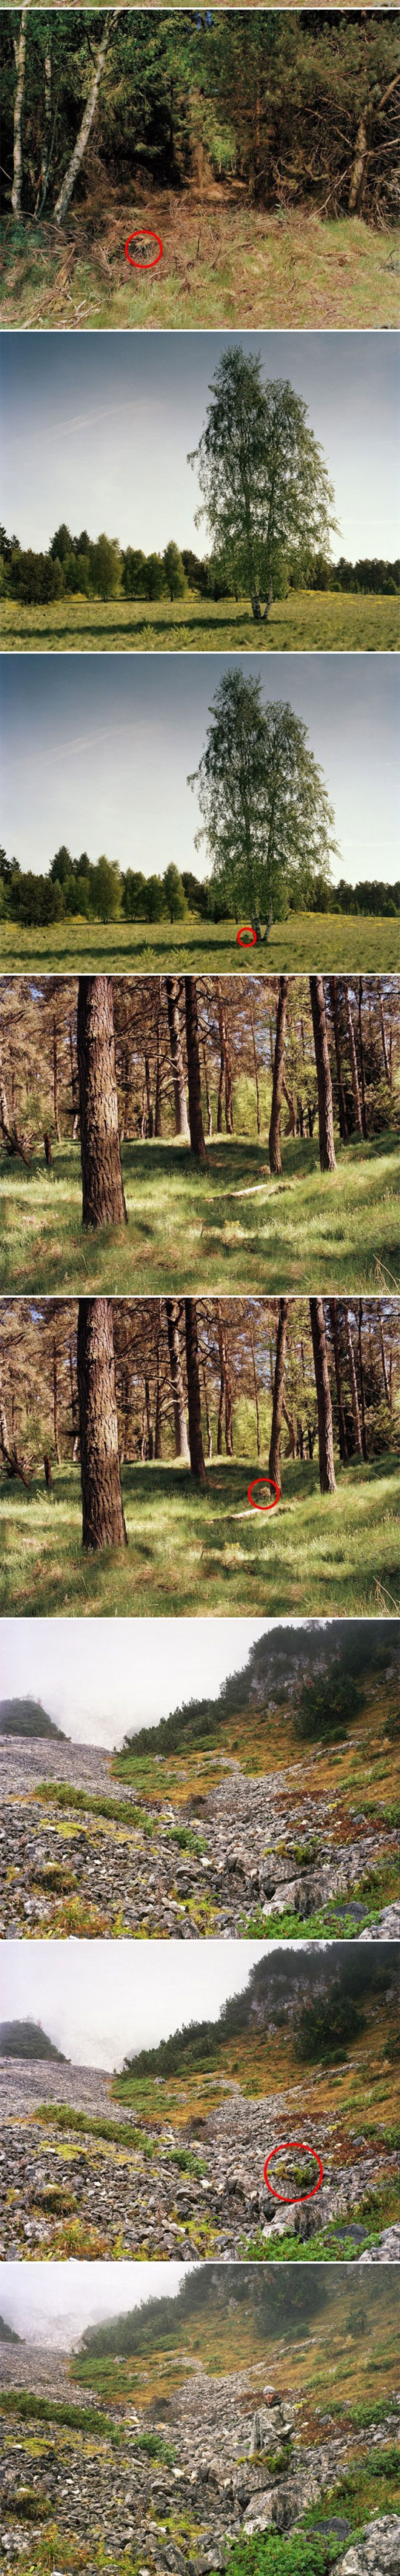 cool-sniper-camouflage-forest-trees-hidden